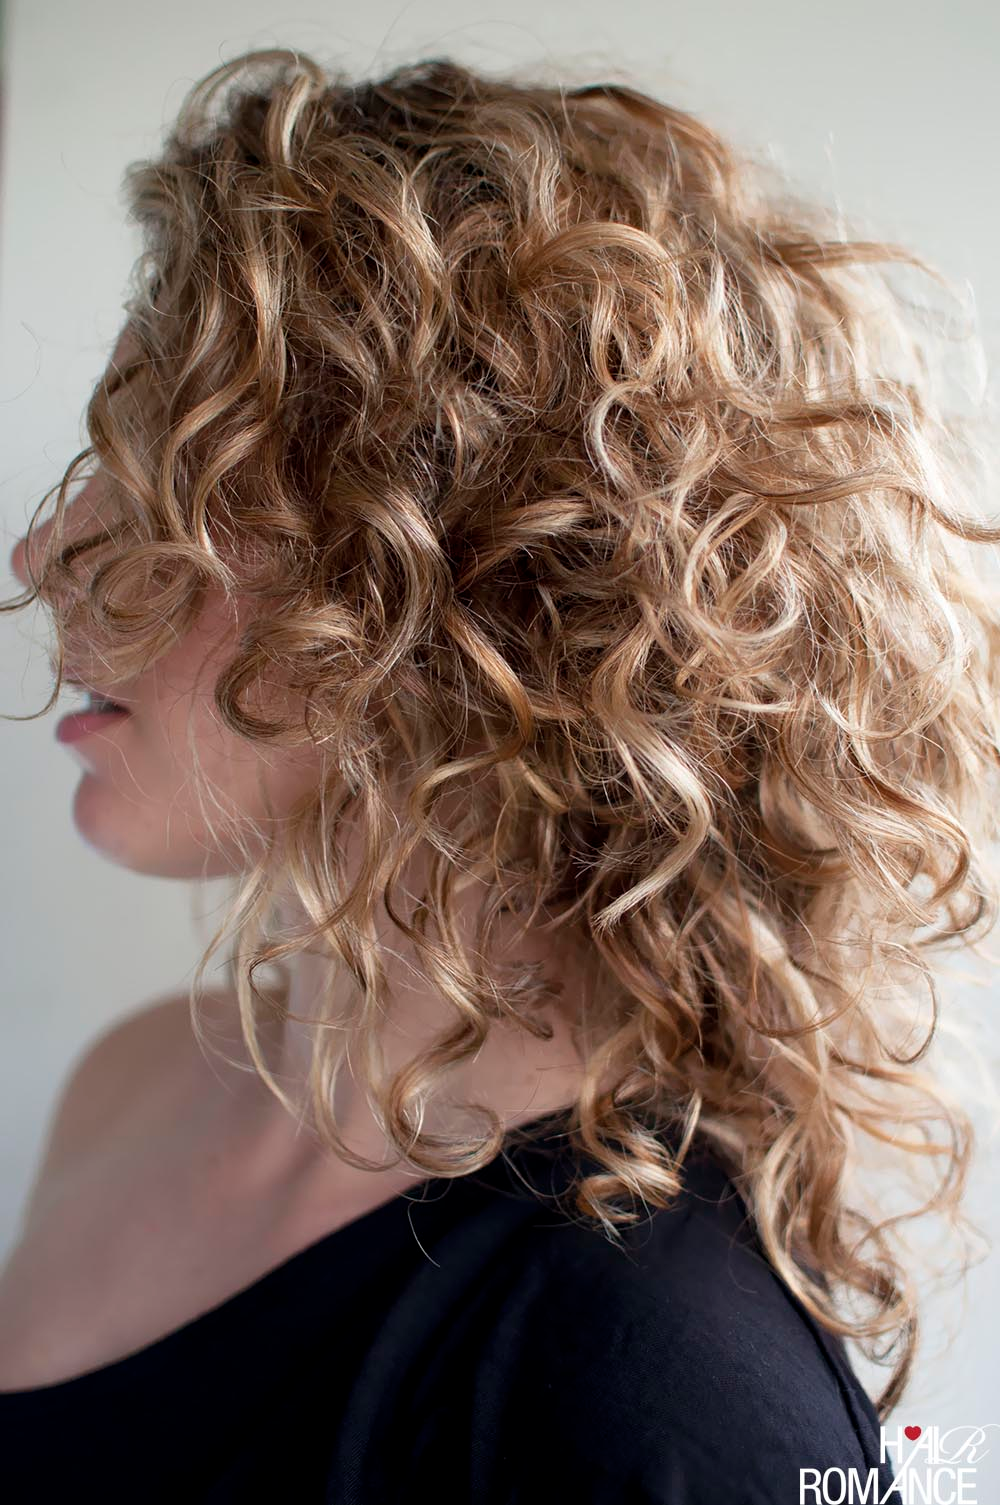 The Best Haircuts For Curly Hair Hair Romance Curly Hair Styles Naturally Hair Romance Hair Styles